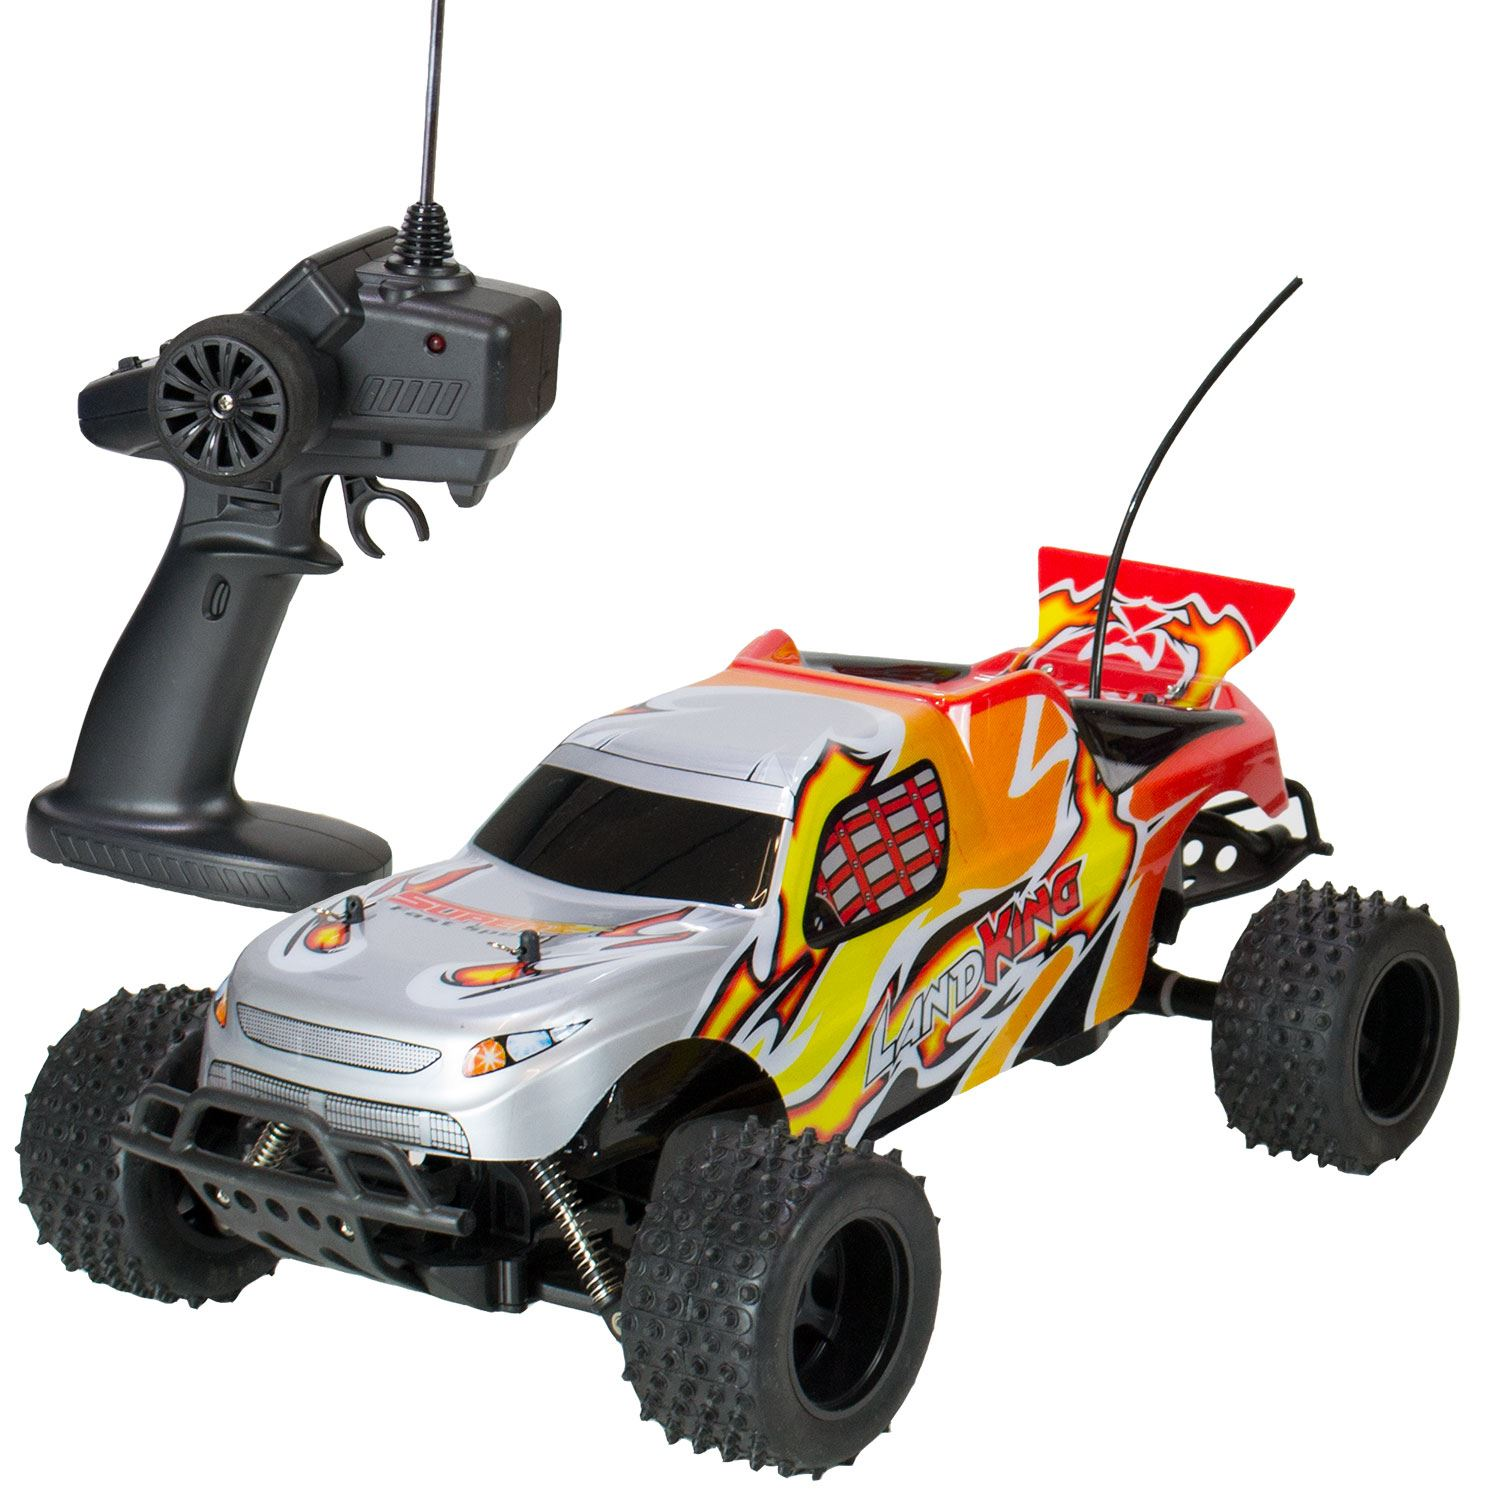 landking radio remote control off road racing rc car buggy monster truck red ebay. Black Bedroom Furniture Sets. Home Design Ideas